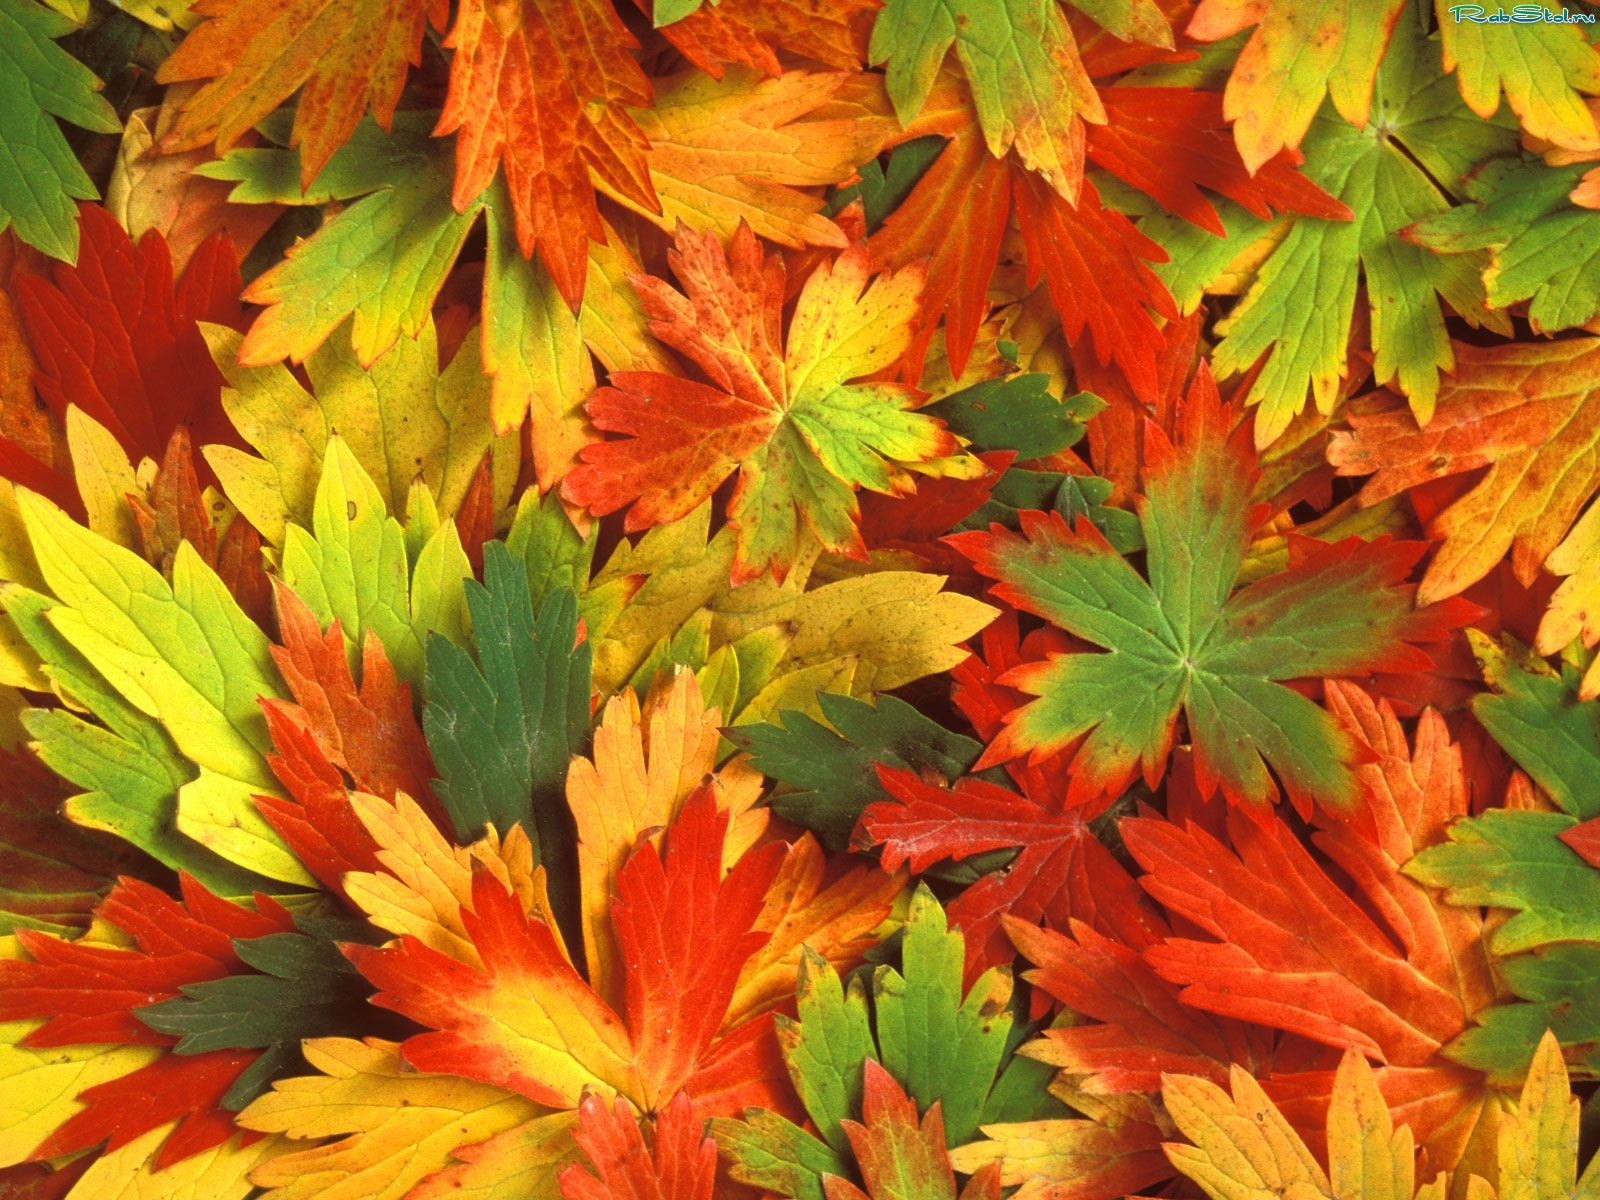 texture autumn leaves, autumn, foliage, download photo, leaves texture, colorful leaves